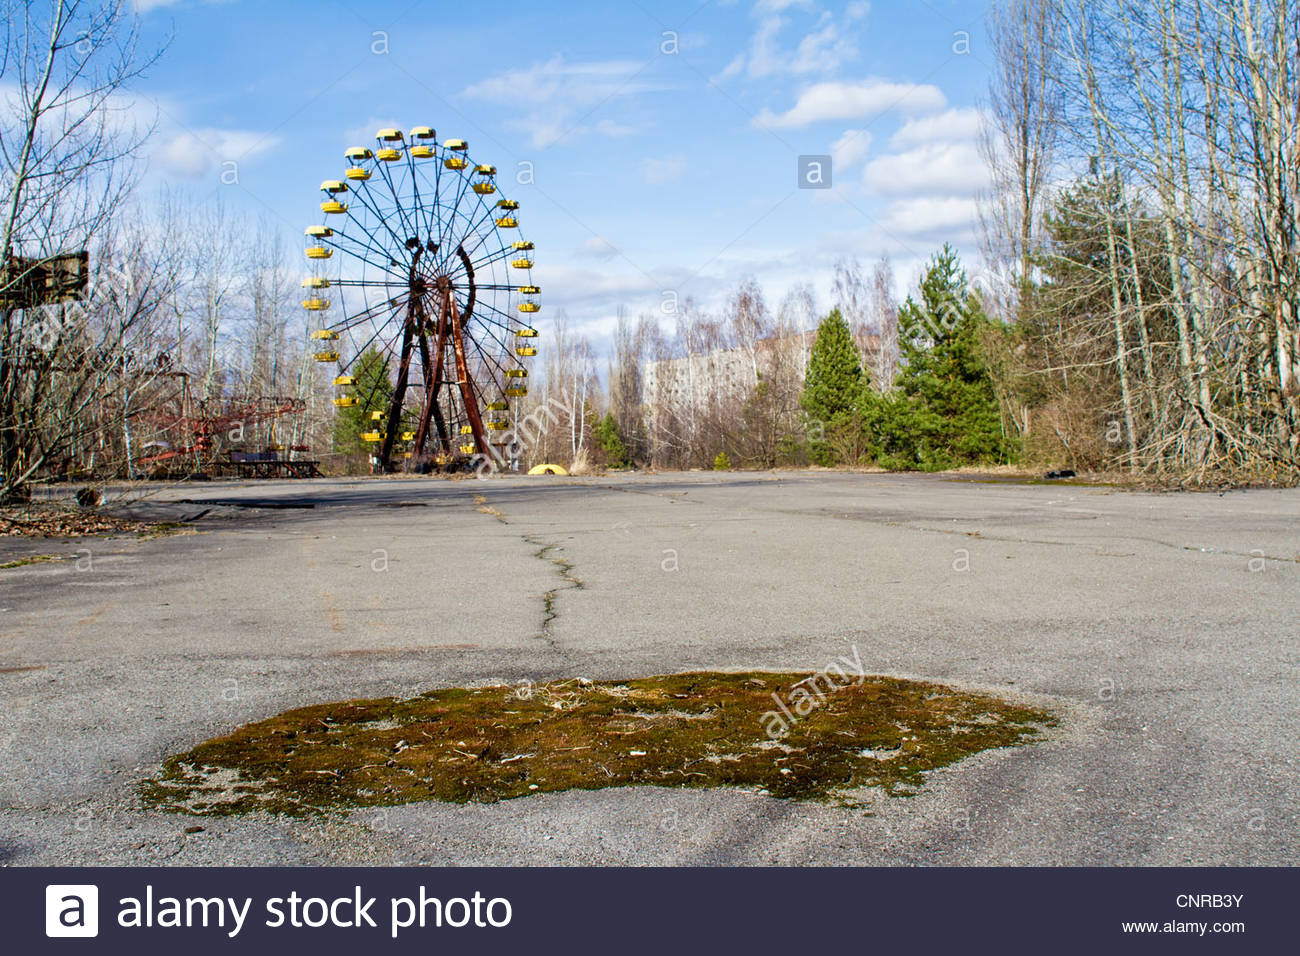 Chernobyl. Pripiat. 2012 March, Chernobyl zone. March 2012. The ferris wheel in The Pripiat city. The highest level - Stock Image